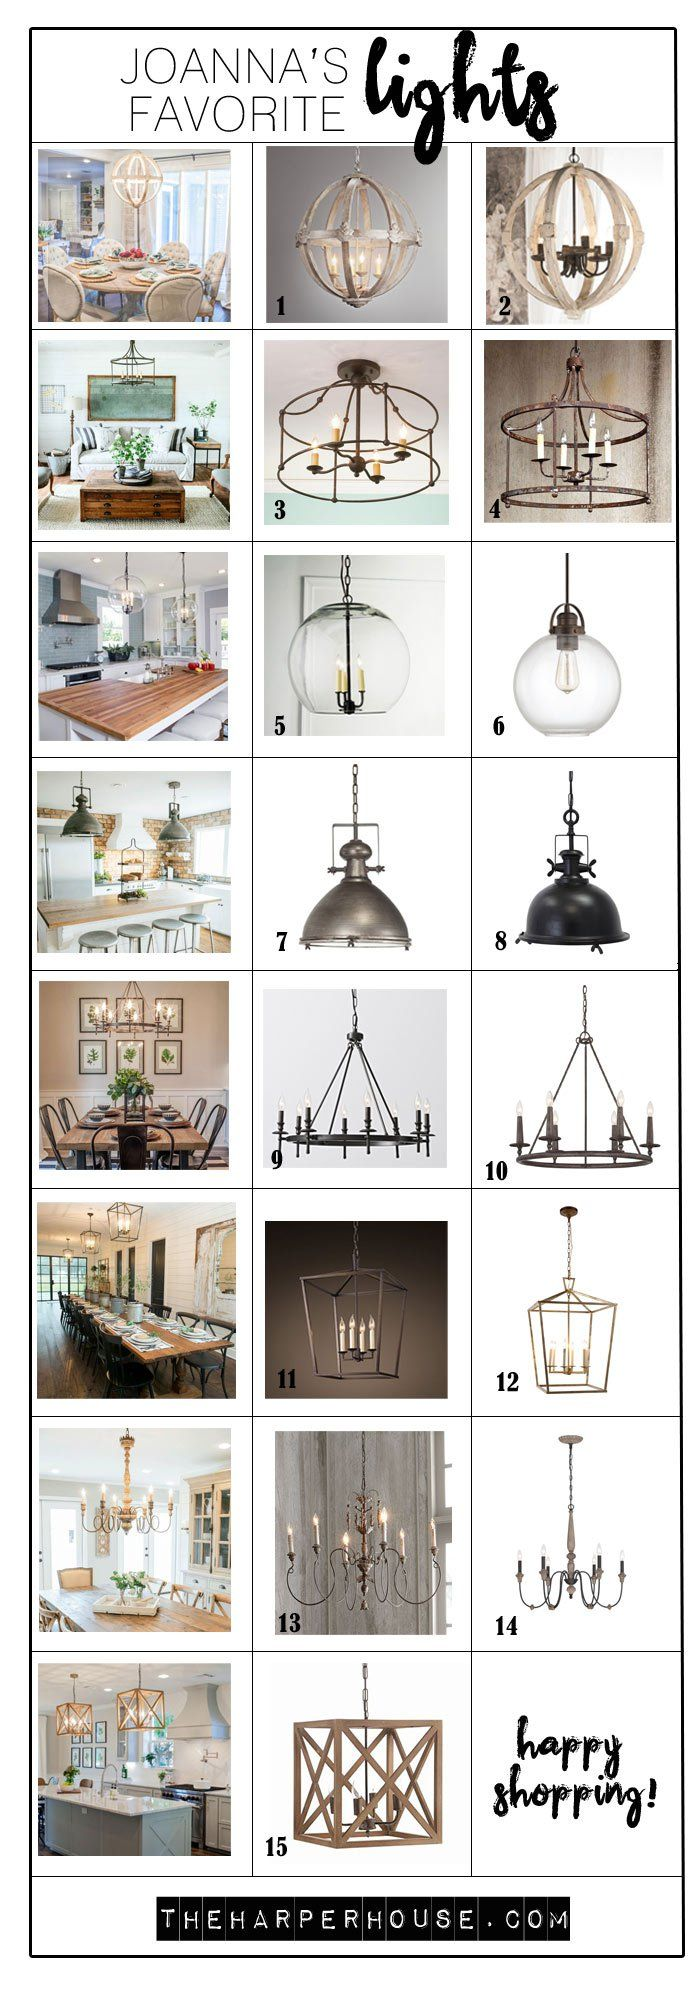 Favorite Light Fixtures For Fixer Upper Style Loxahatchee - Fixer upper kitchen light fixtures